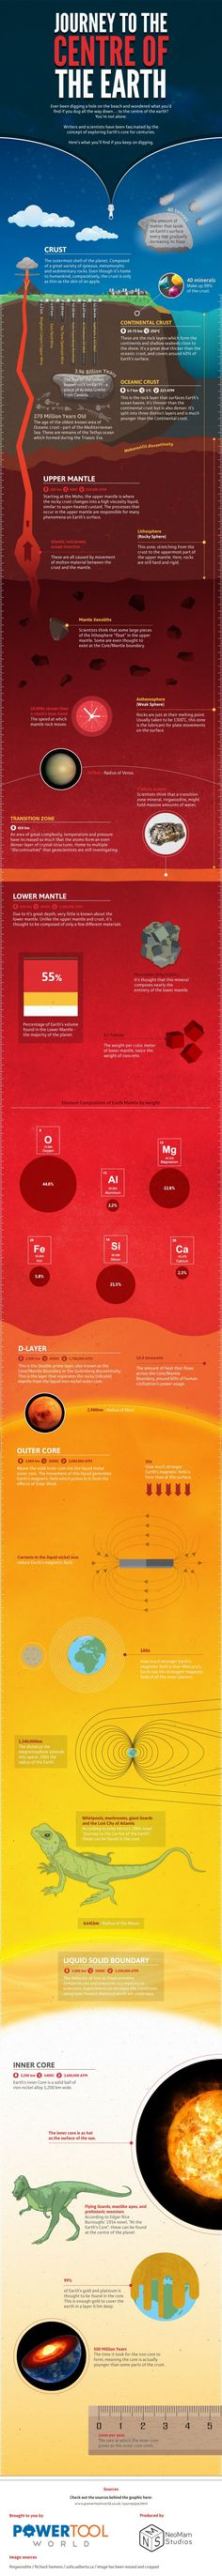 Journey to the Centre of the Earth   #infographic #Earth #Crust